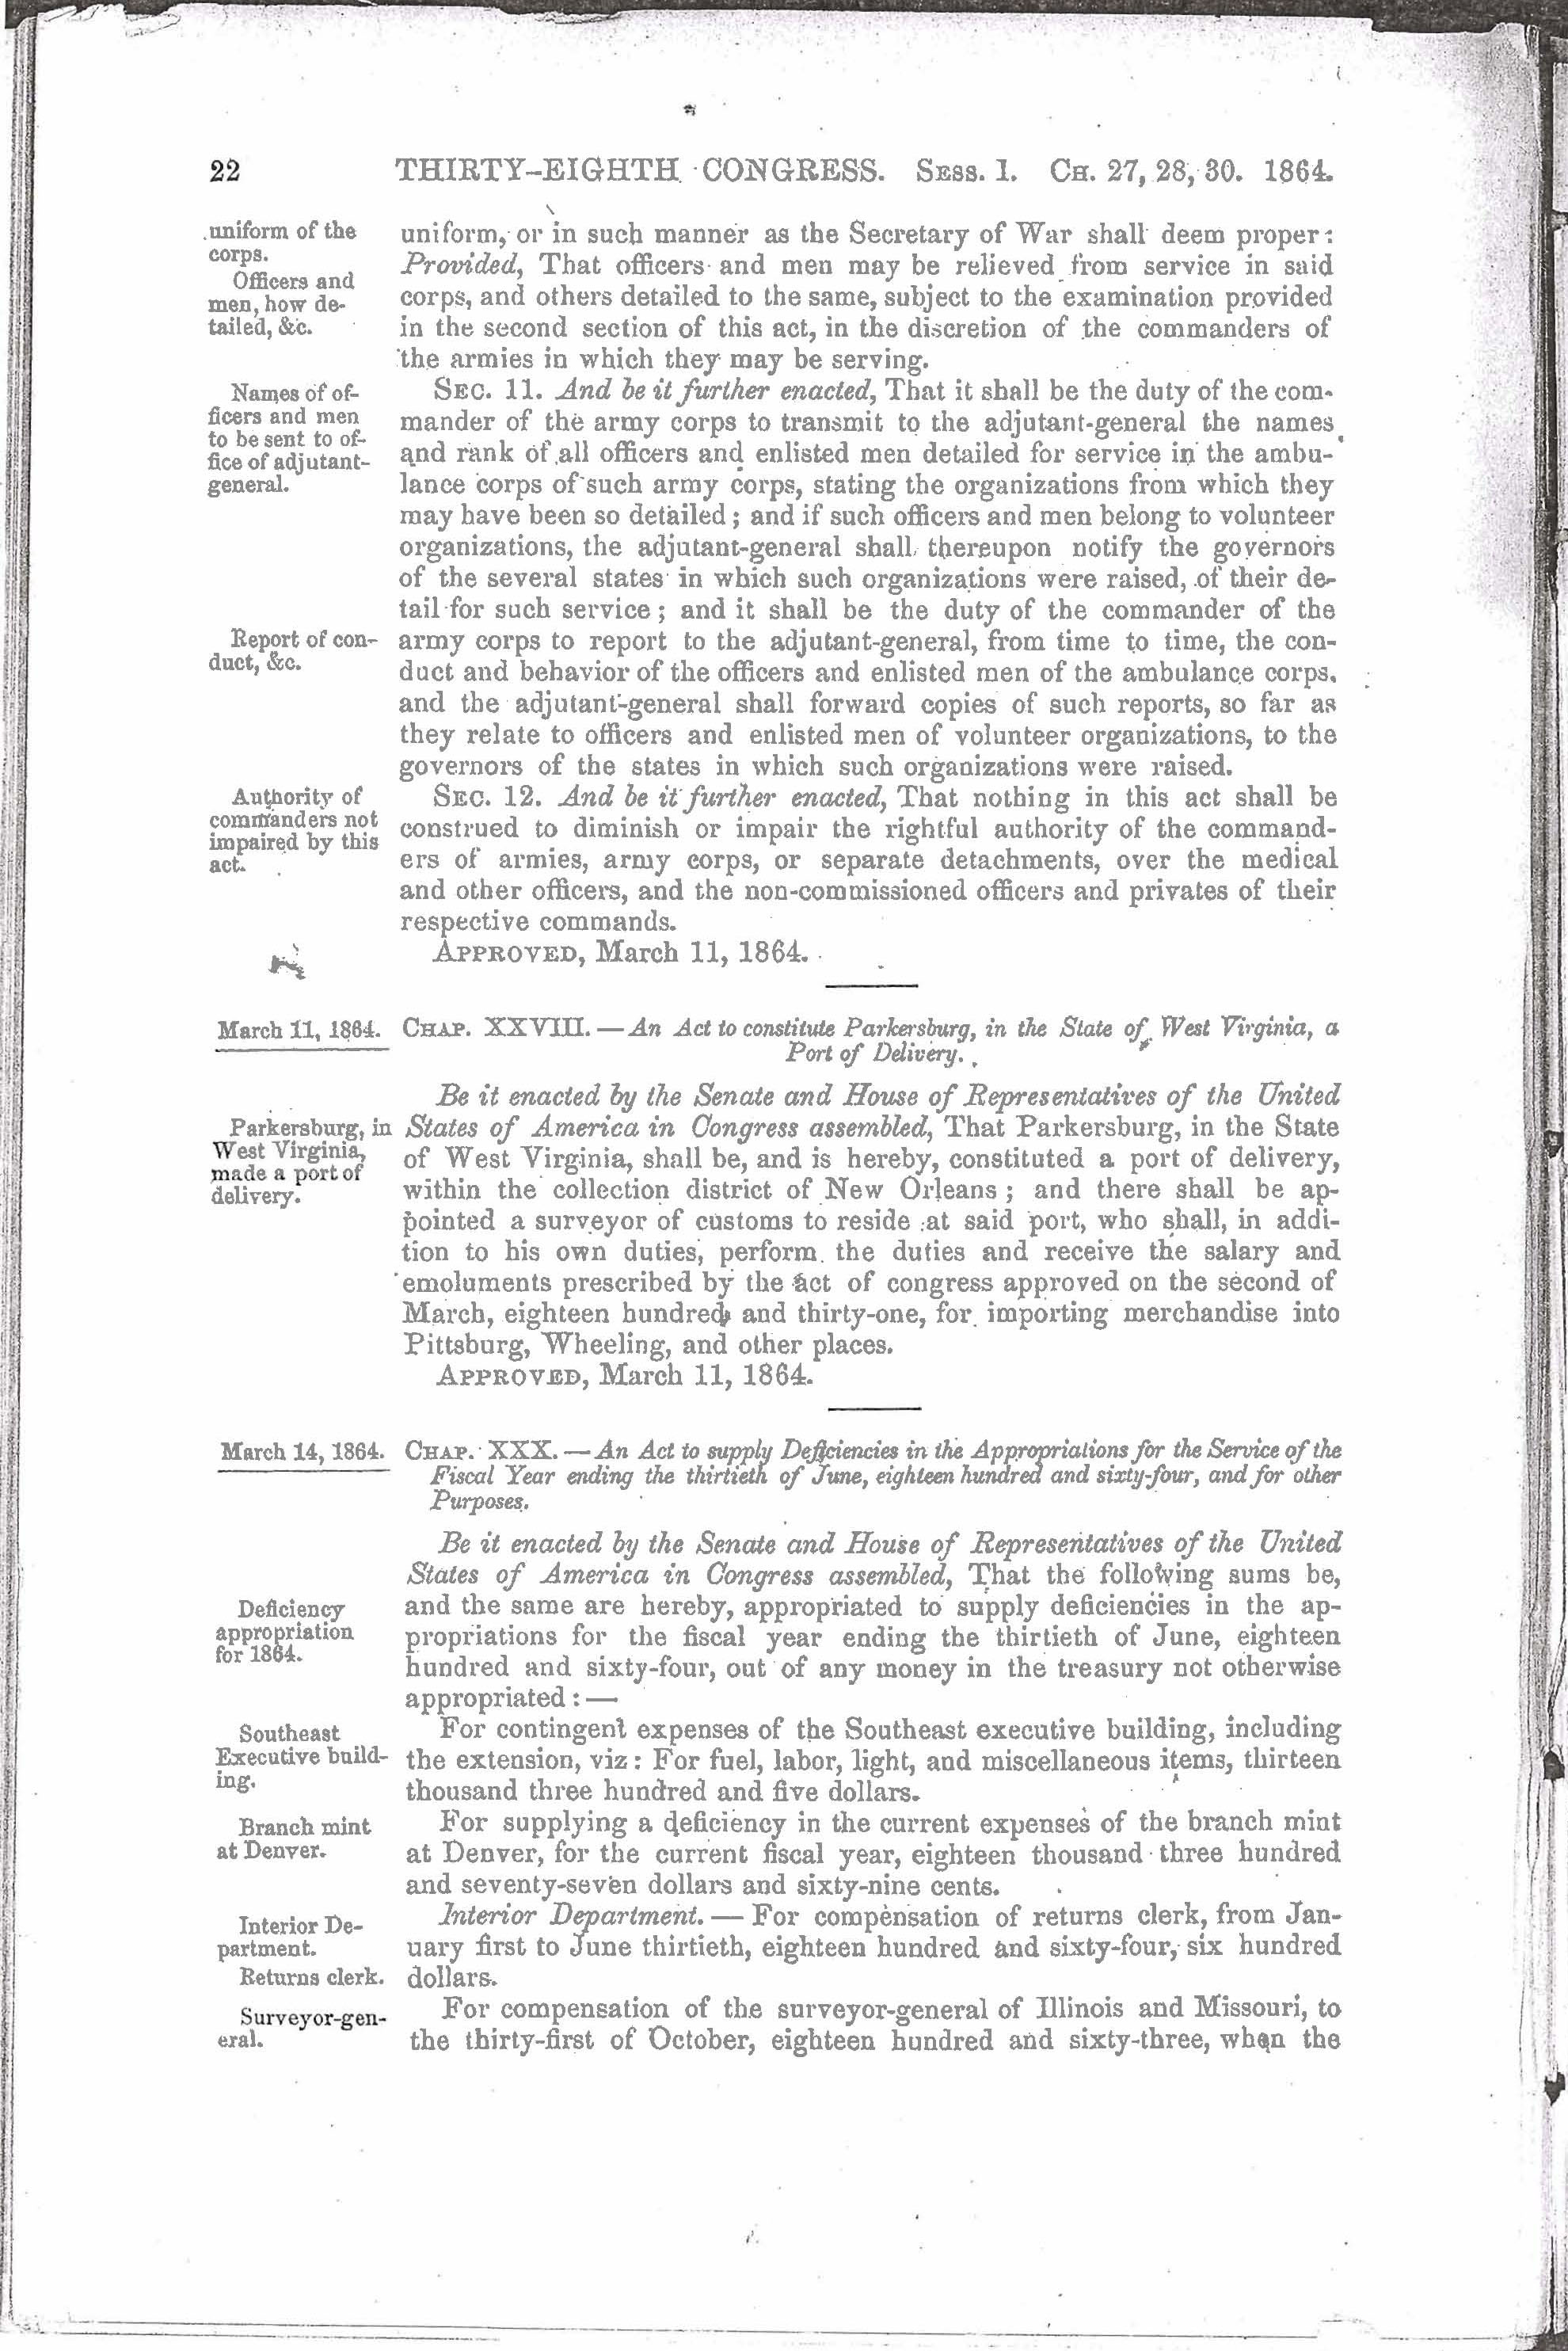 Act of Congress Authorizing Construction of the Washington Naval  Hospital, Page 1 of 7